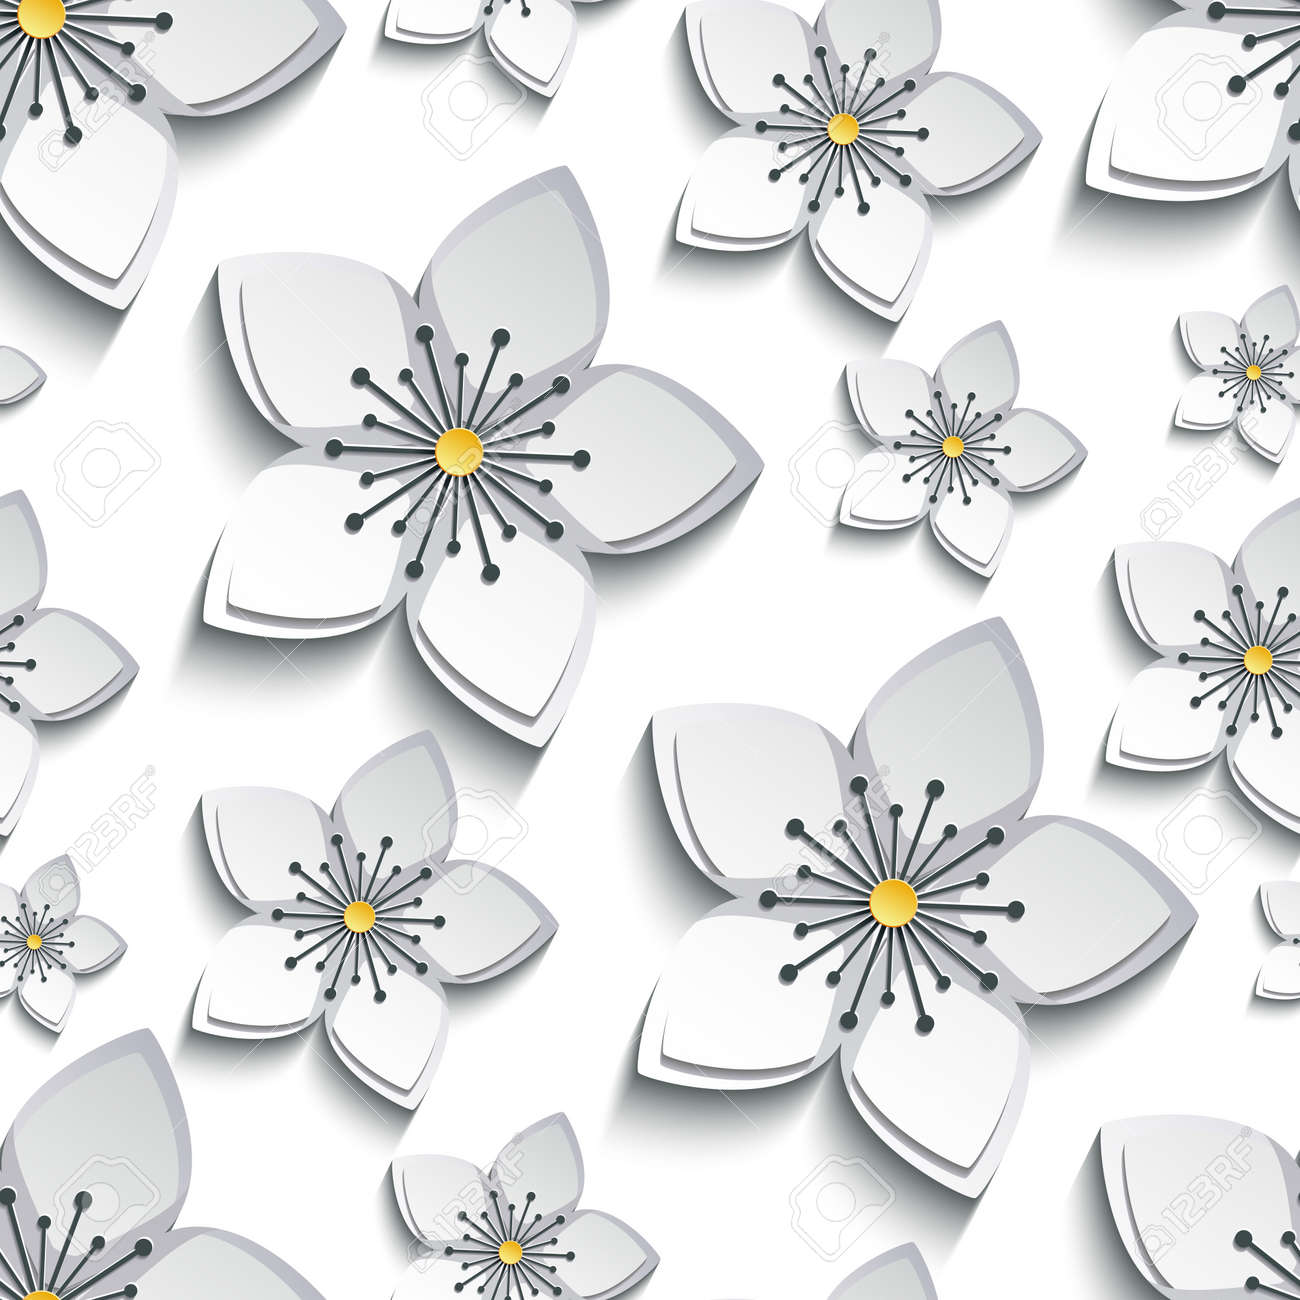 Trendy Background Seamless Pattern With Decorative White Grey 3d